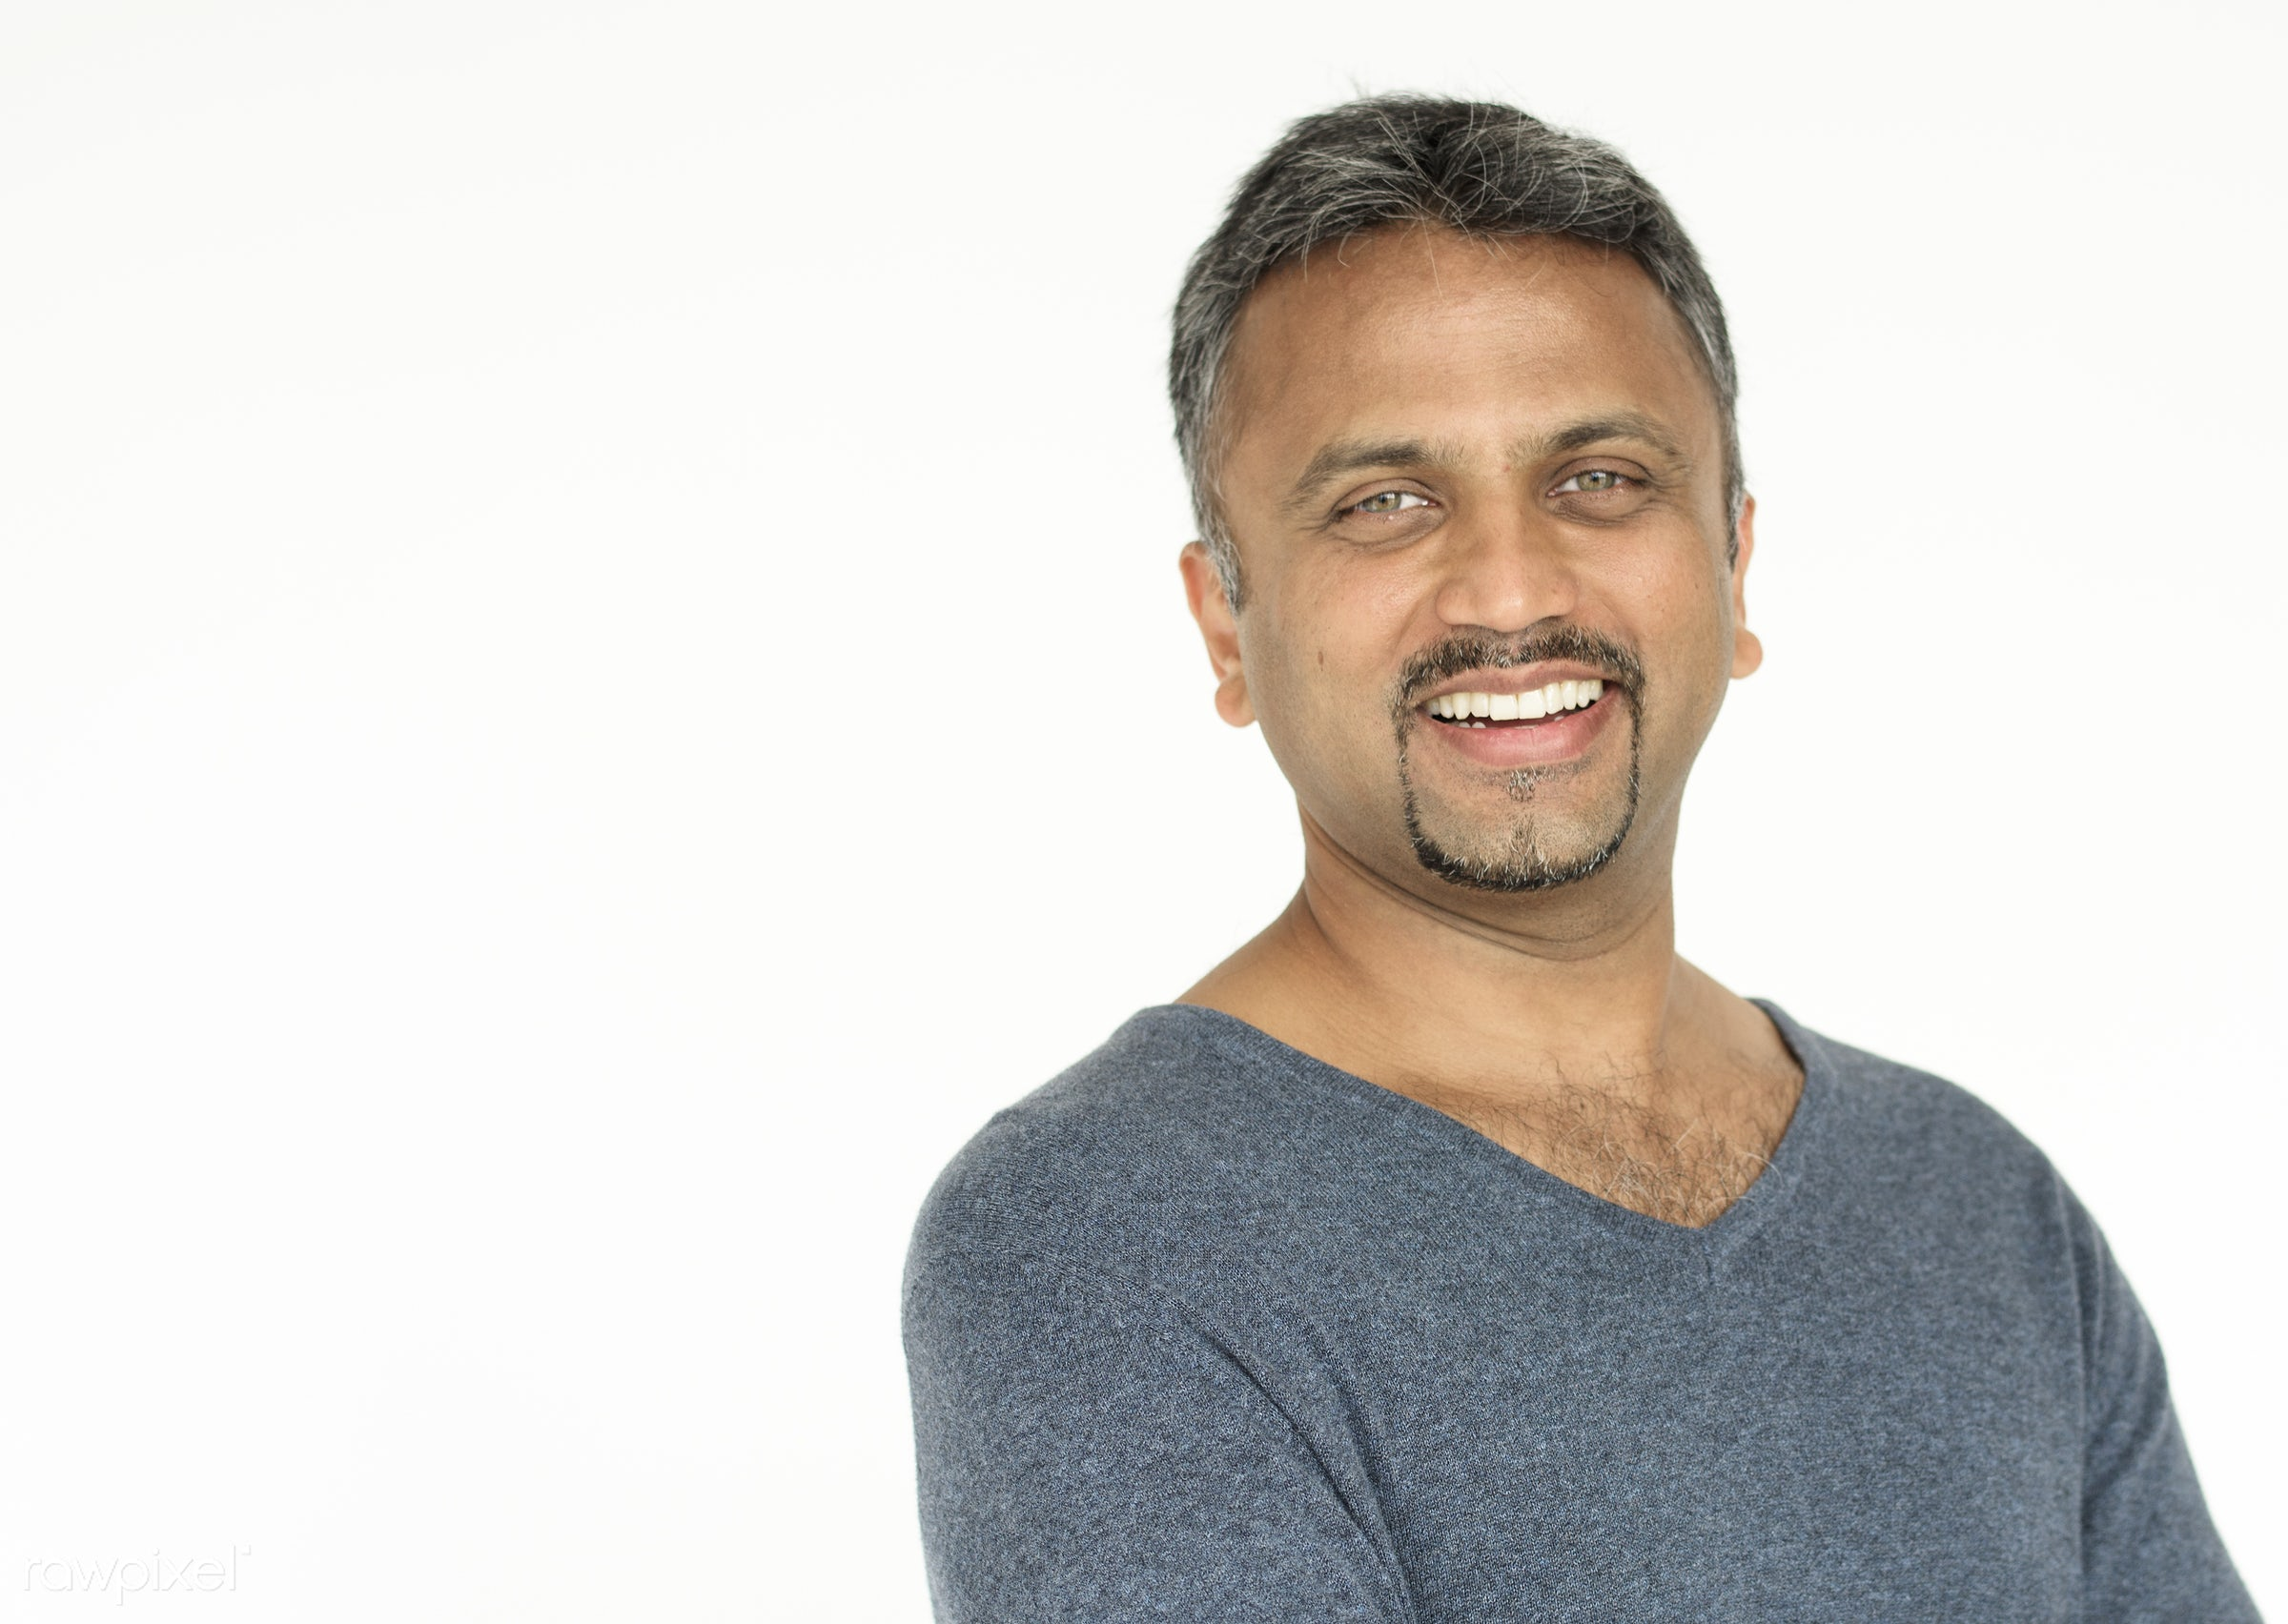 expression, studio, person, indian ethnicity, one, people, race, style, lifestyle, casual, smile, cheerful, smiling, man,...